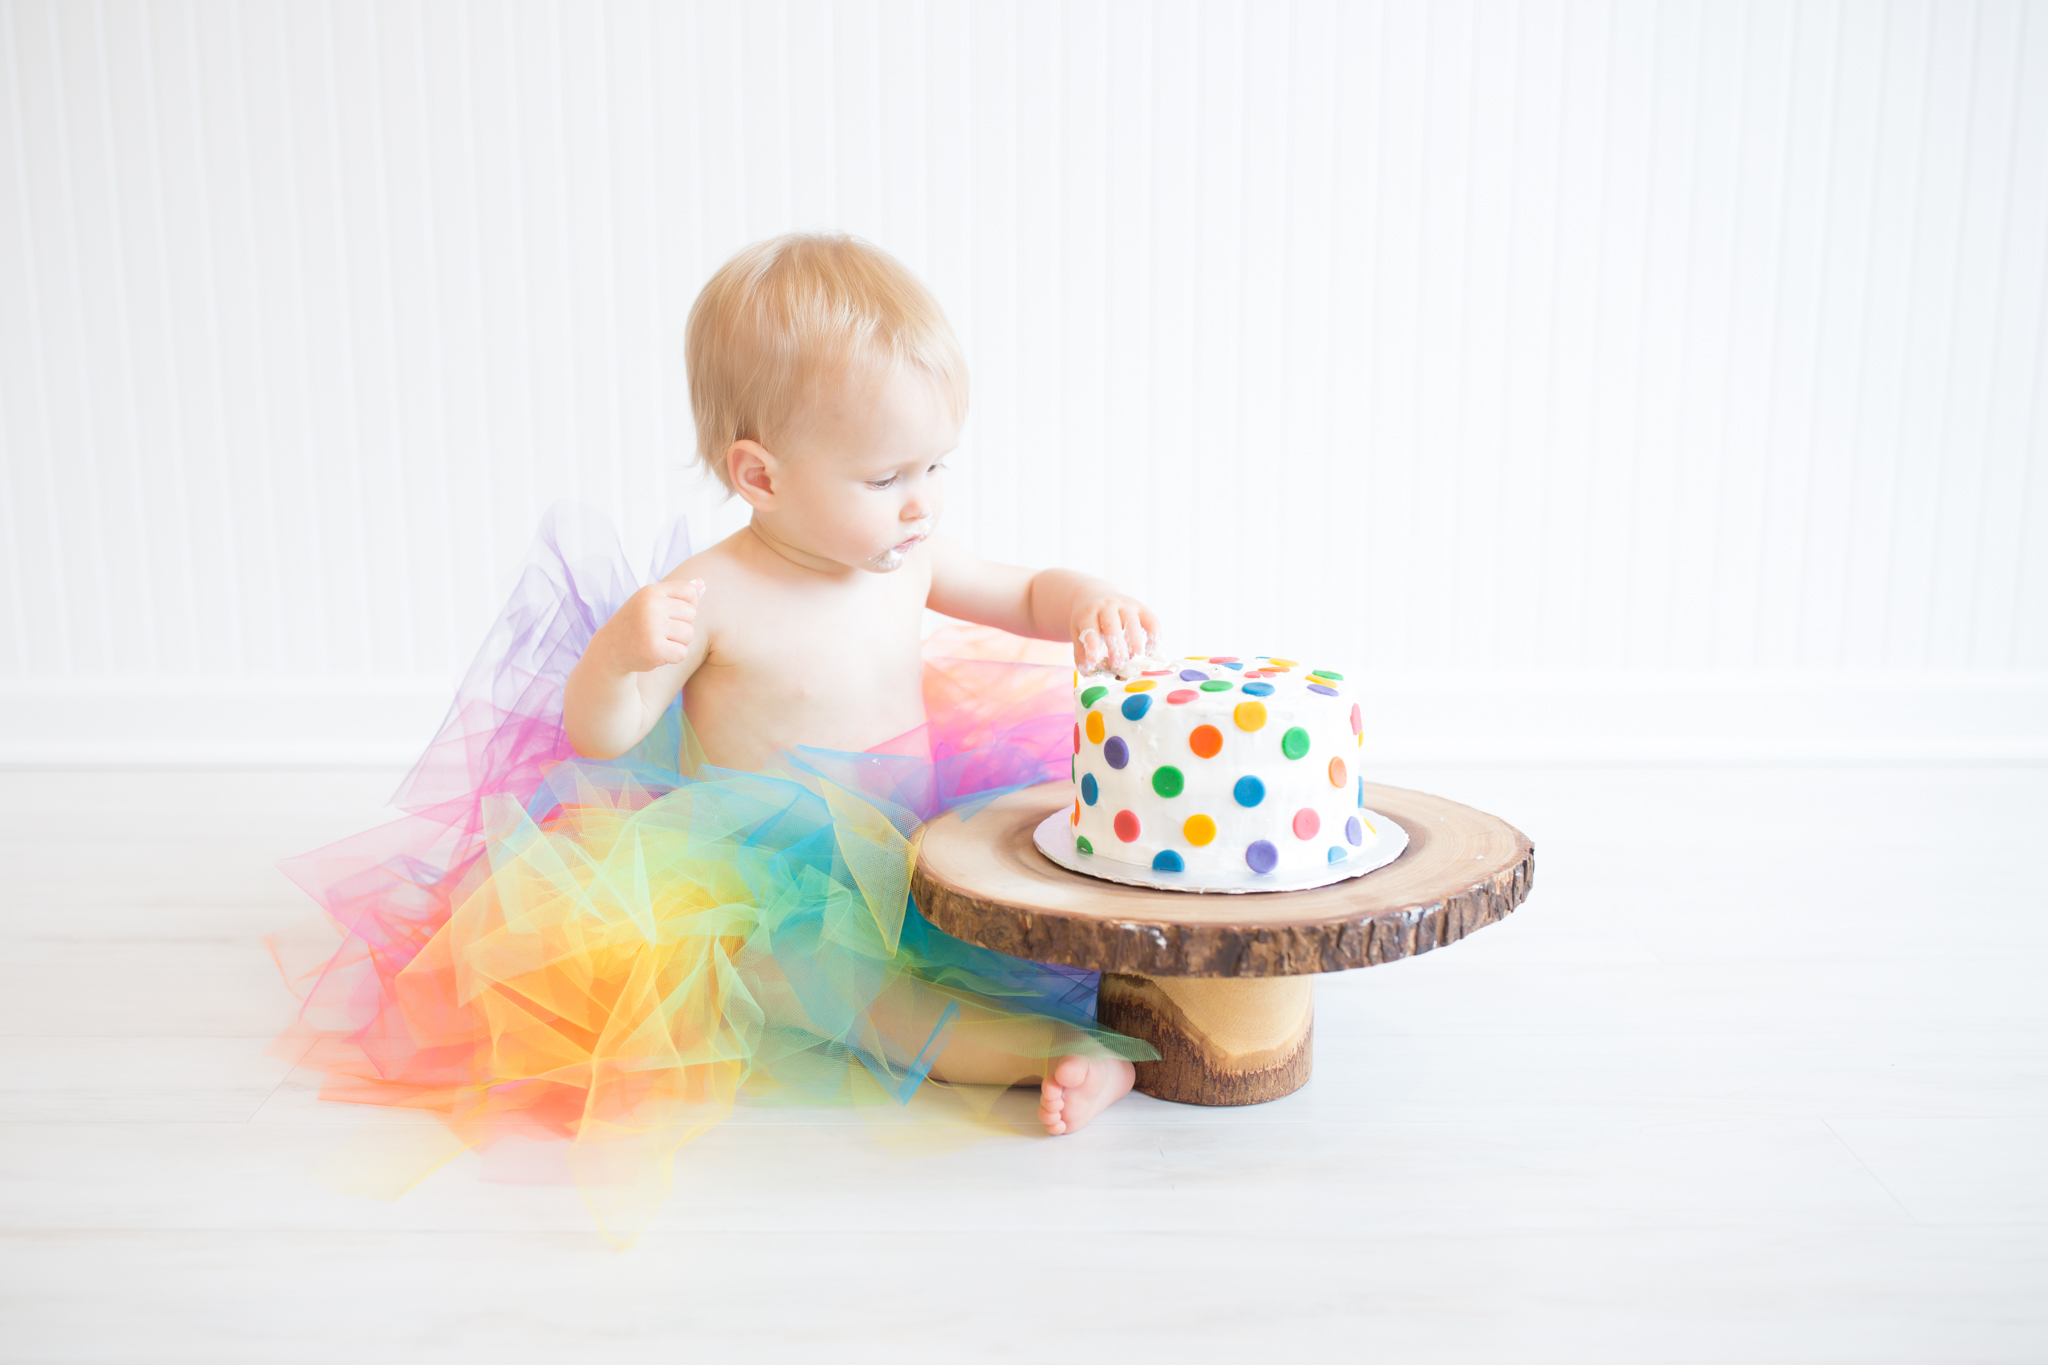 Milestone cake smash Newborn Studio Session | Cara Peterson Photography Rockford IL-10.jpg